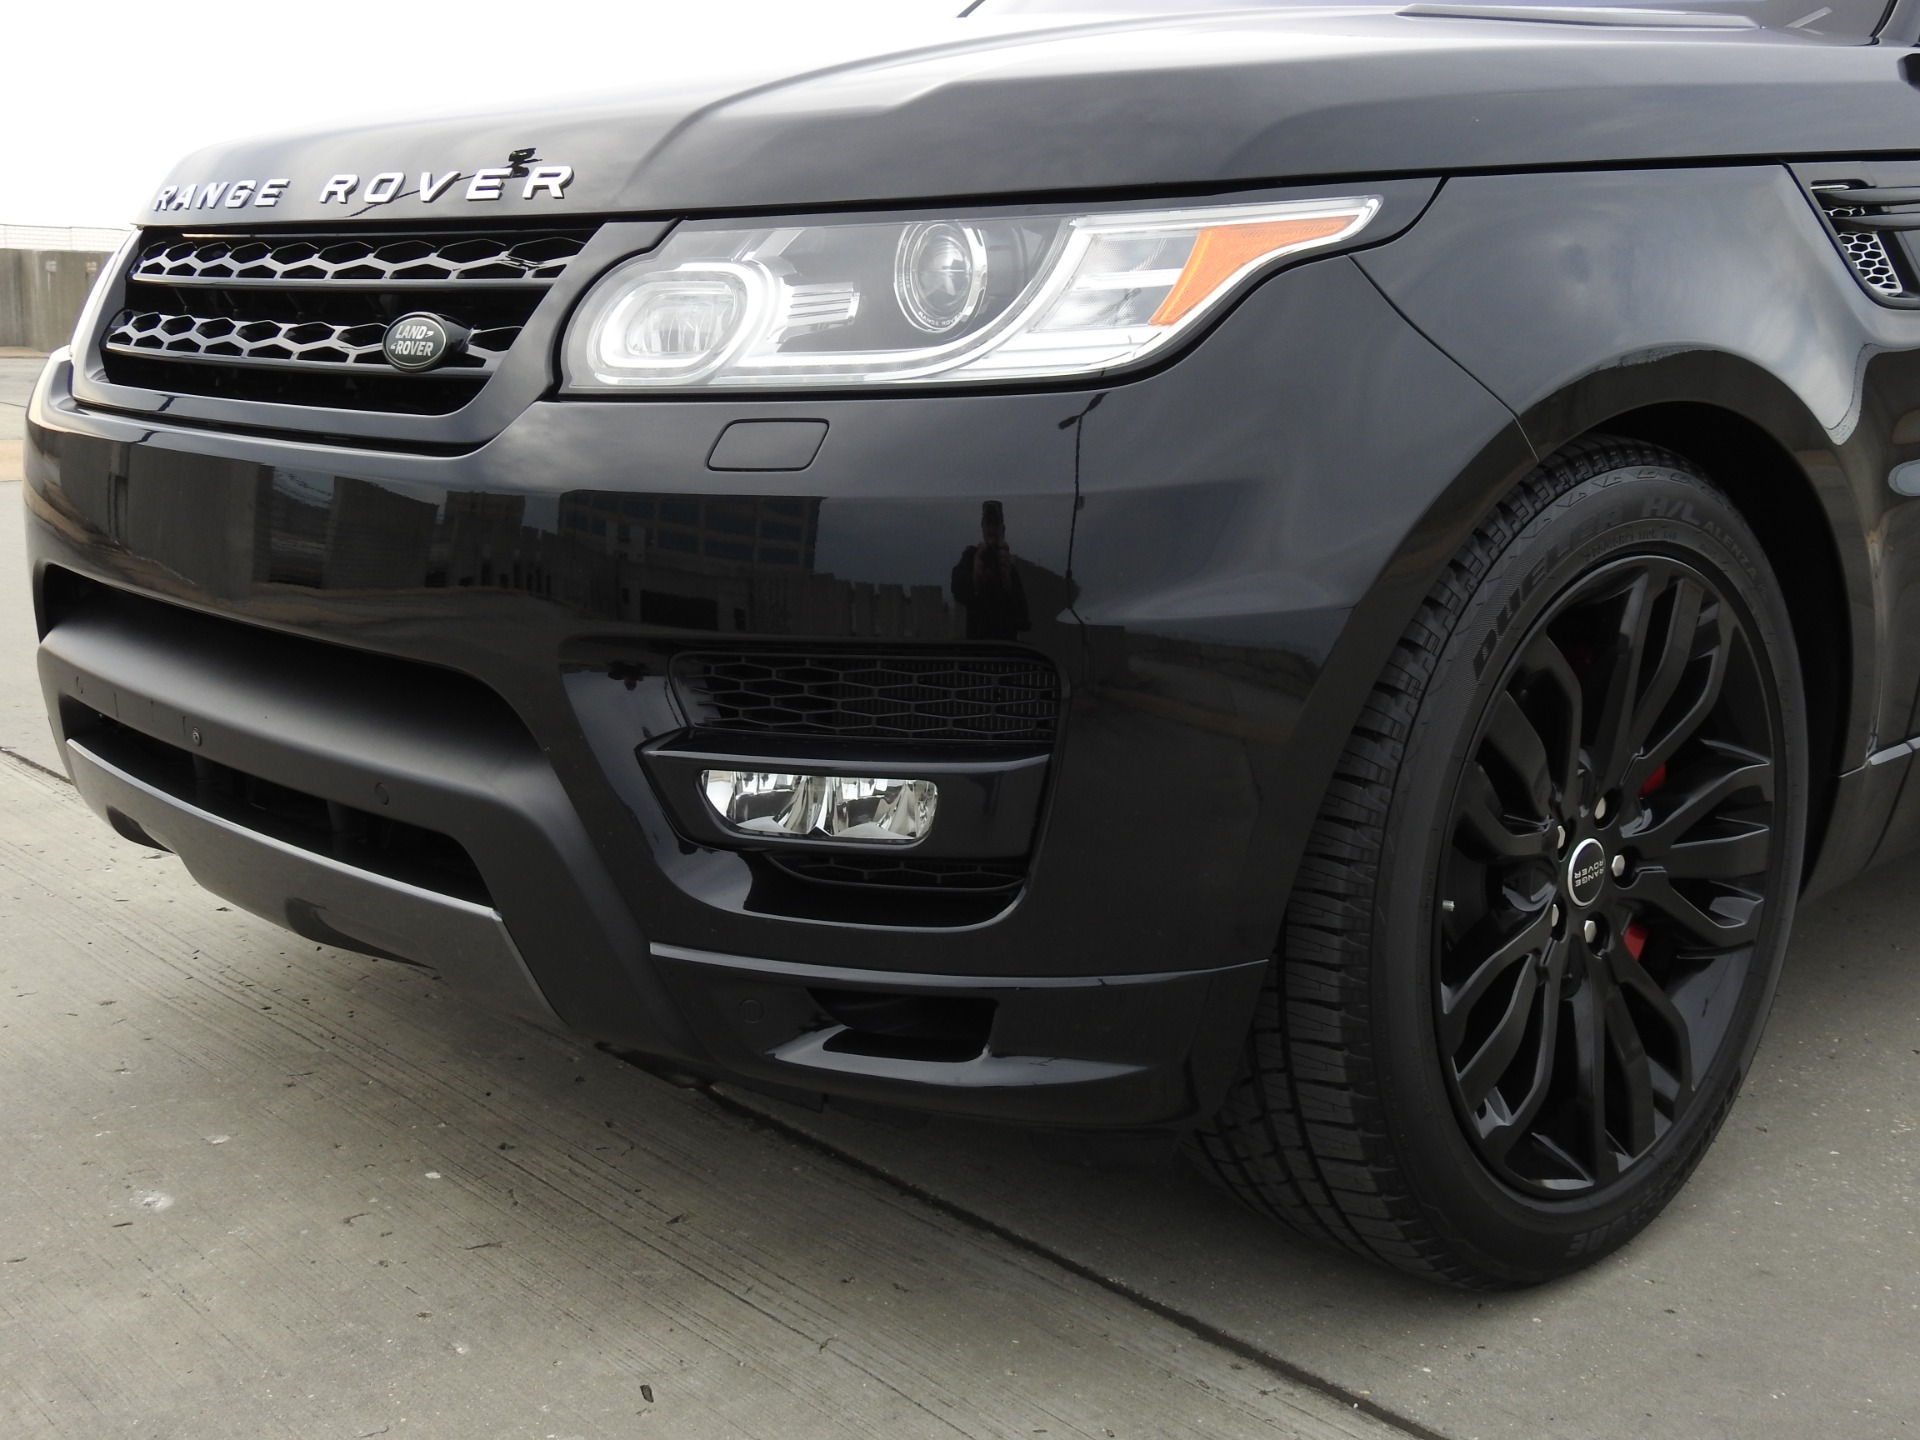 Used-2016-Land-Rover-Range-Rover-Sport-Autobiography-for-sale-Jackson-MS